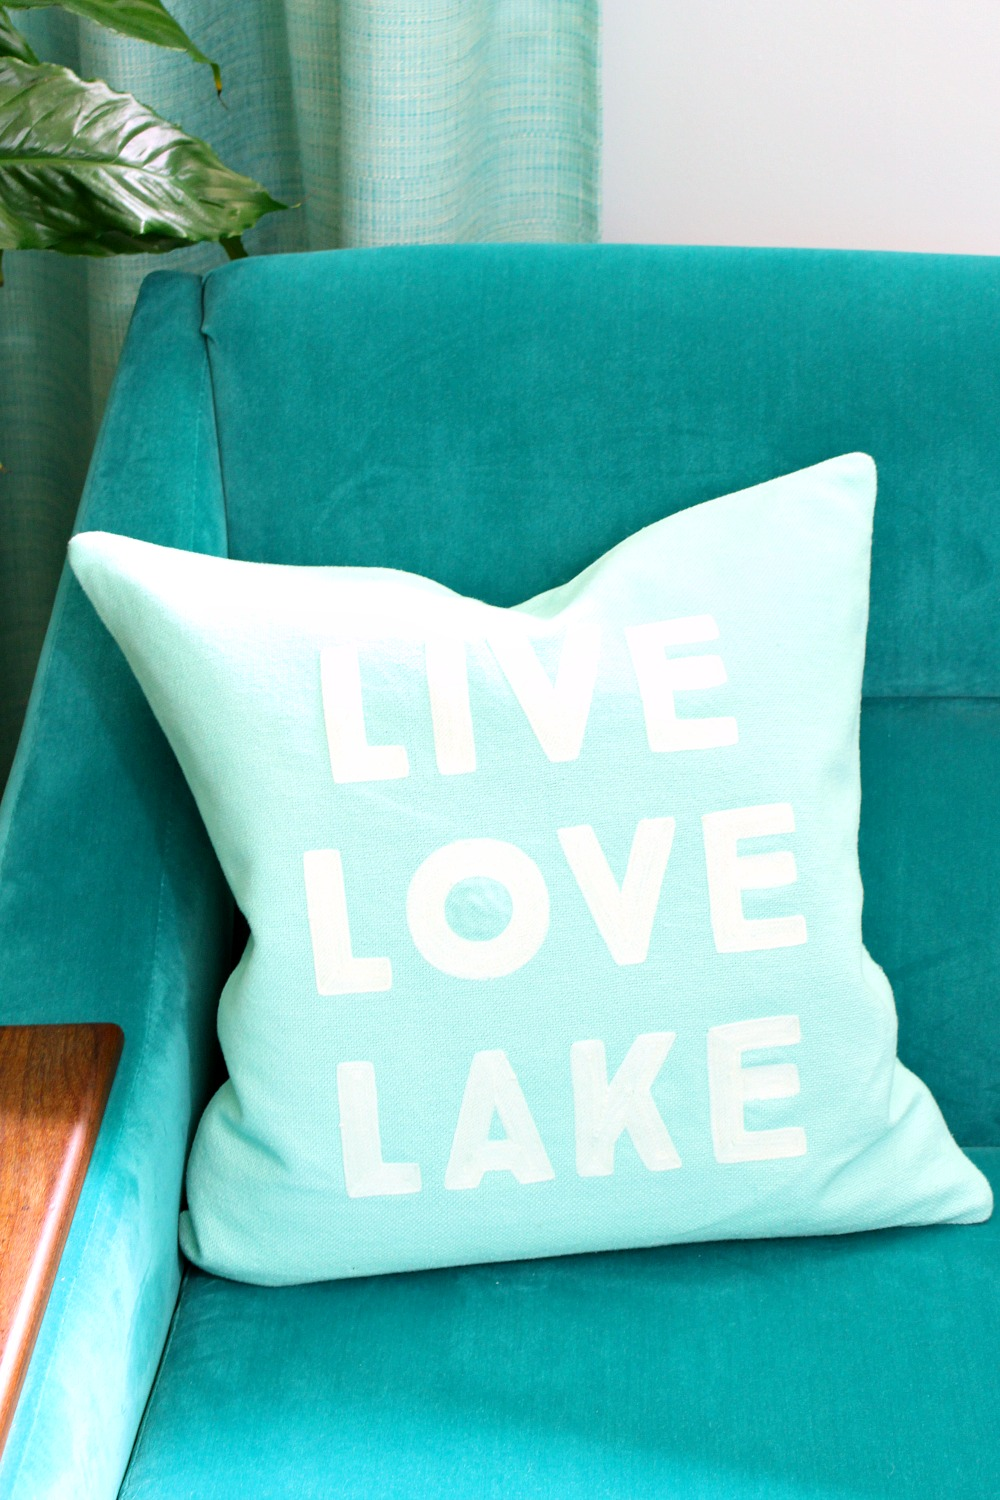 Live Love Lake Pillow